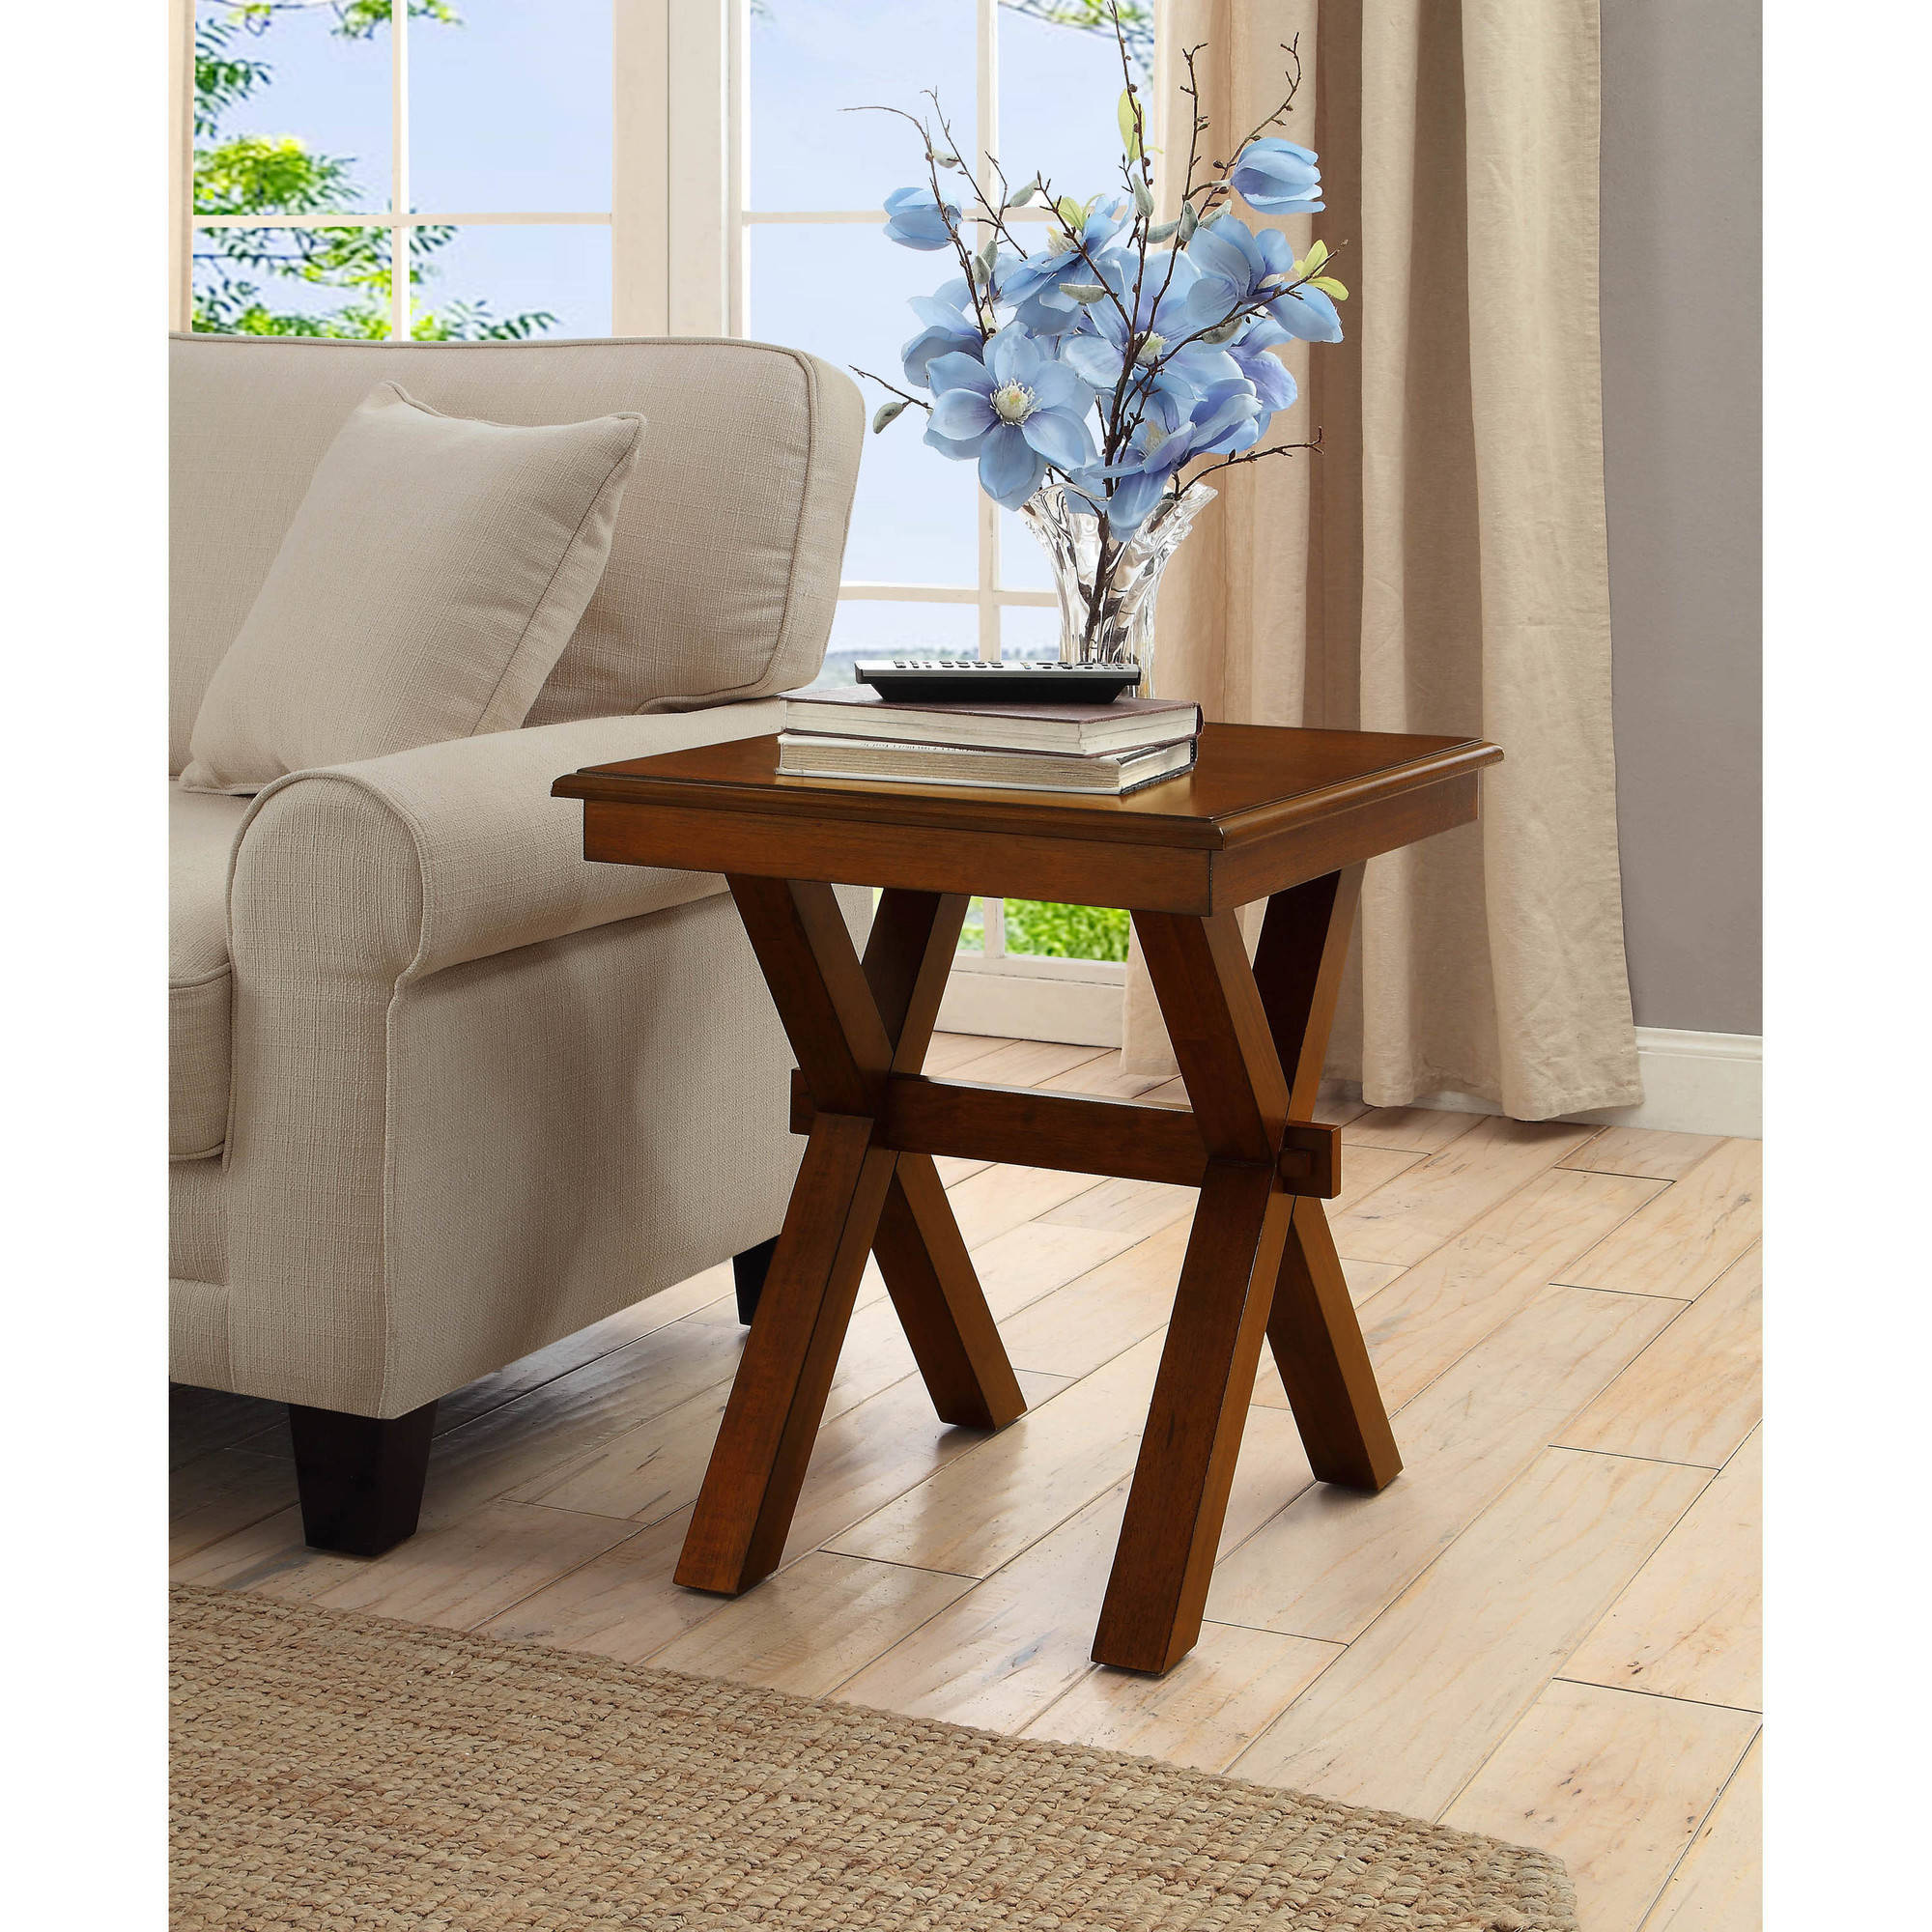 Better Homes and Gardens Maddox Crossing End Table, Cognac by WHALEN LIMITED